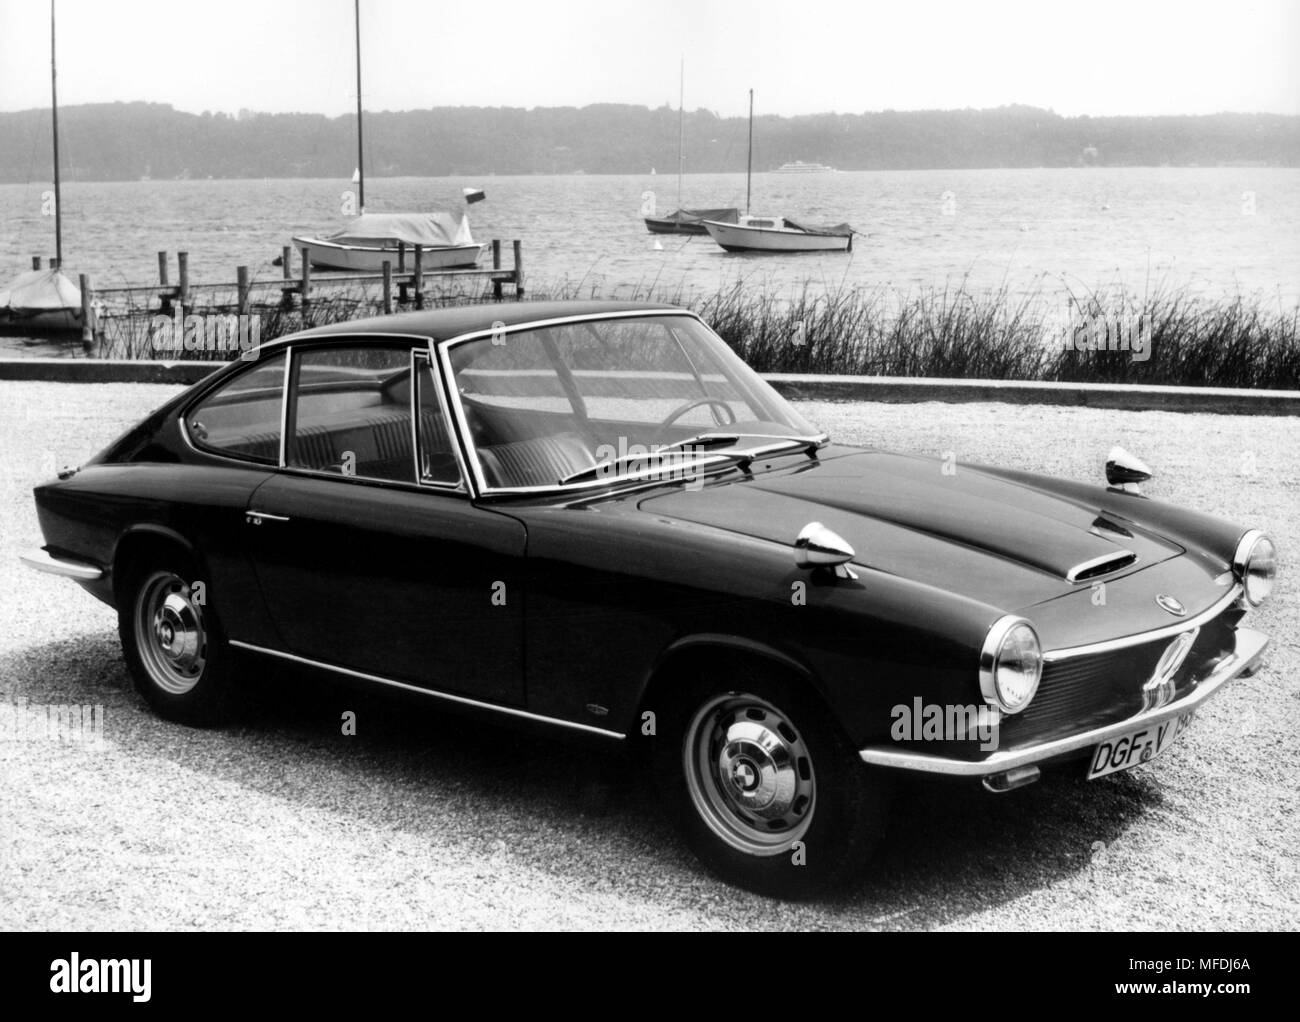 A BMW Of The Type 1600 GT With 105 Hp. (undated Shot) The Fastest Car In The  1600 Series, The New BMW GT Achieves A Top Speed Of 190 Kilometers Per Hour.